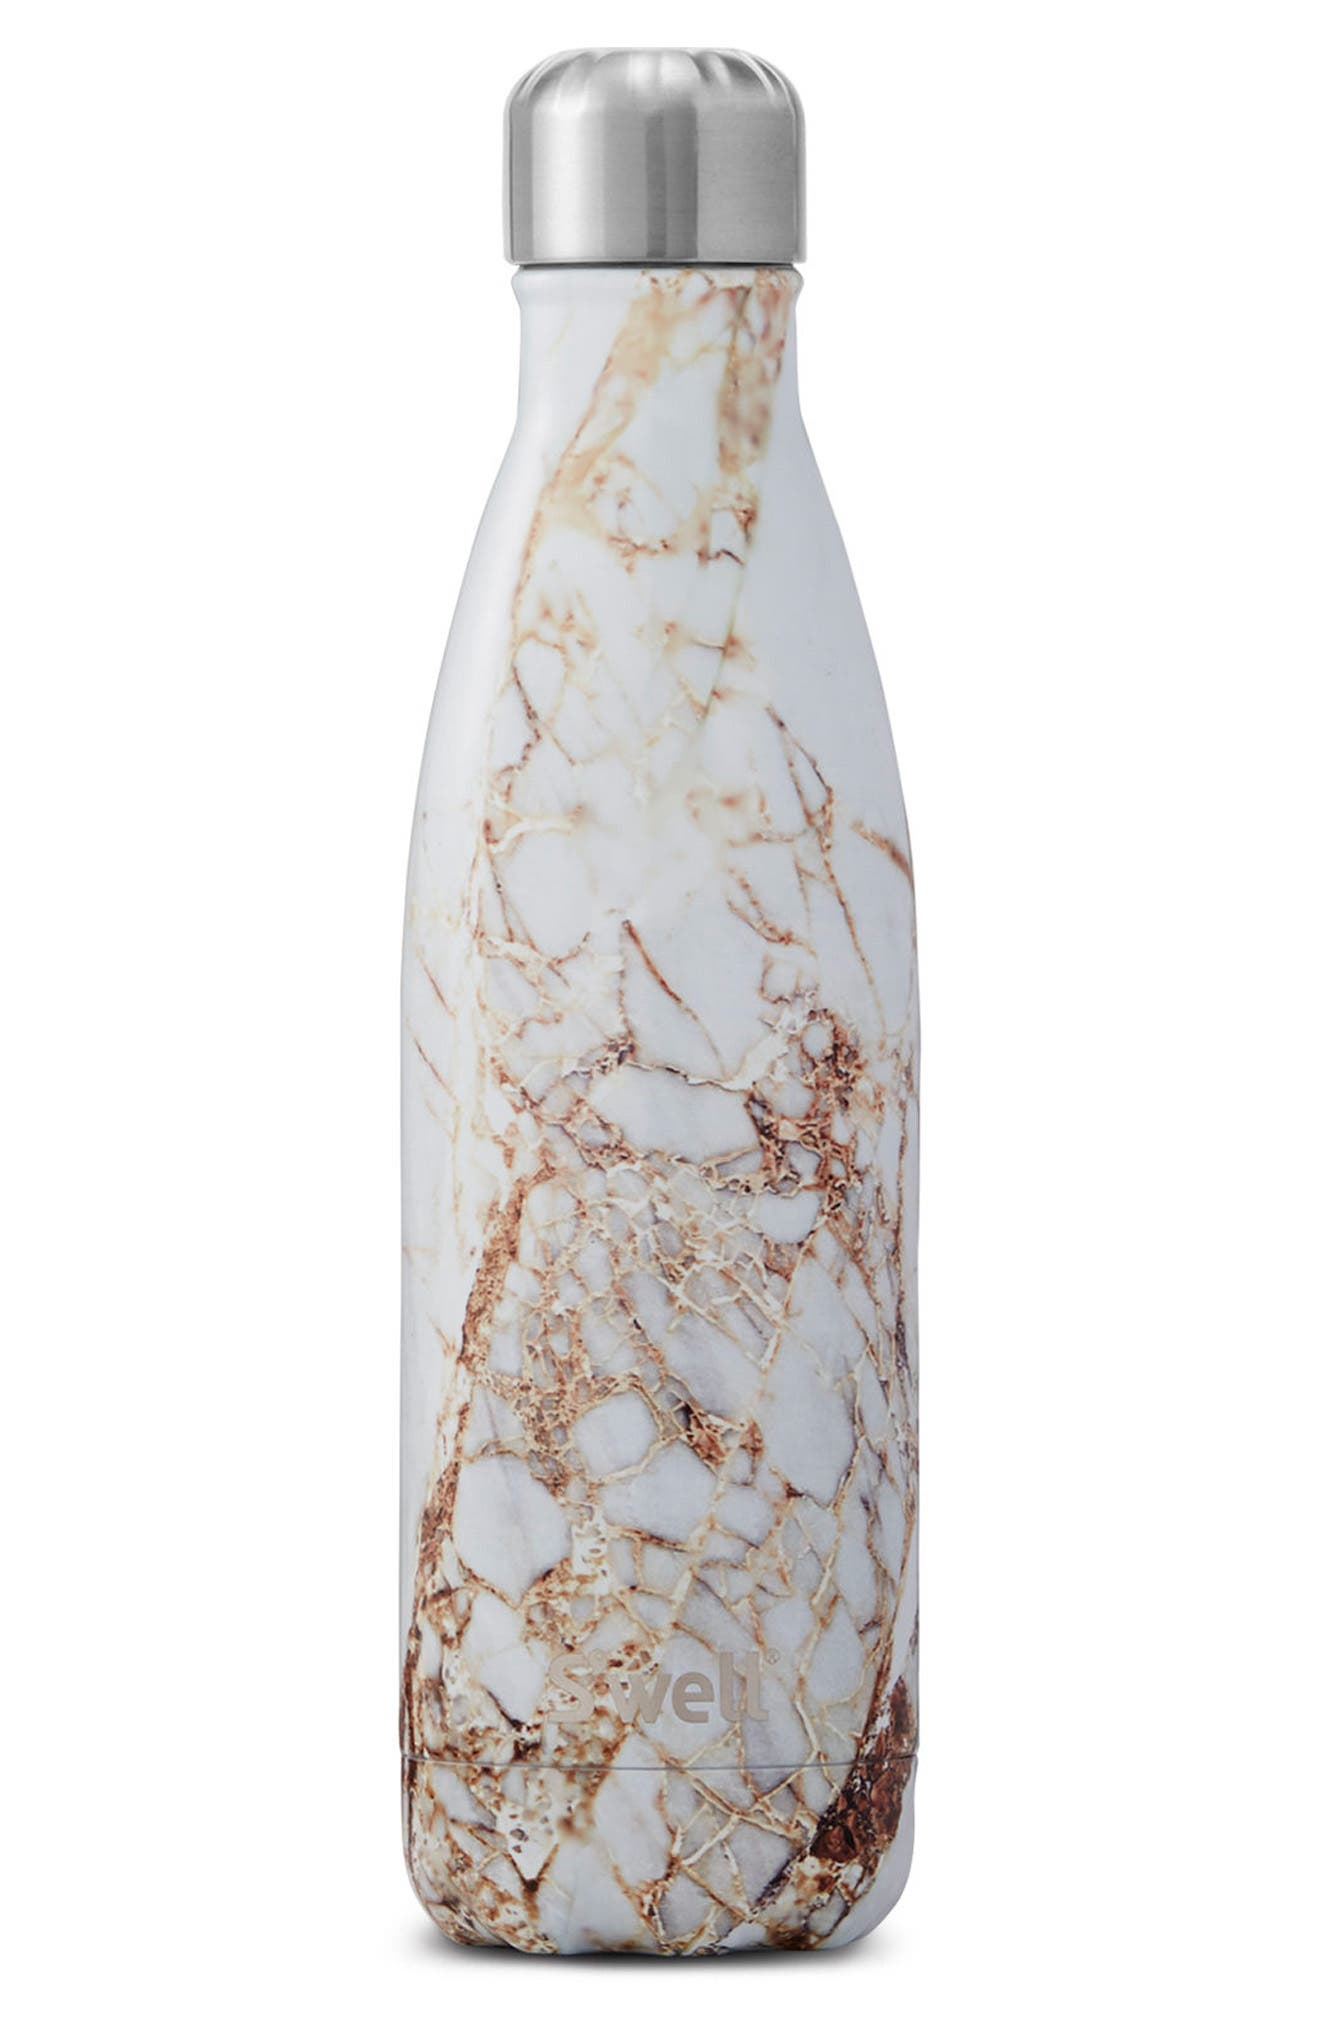 S'well Elements Collection - Calacatta Gold Insulated Stainless Steel Water Bottle